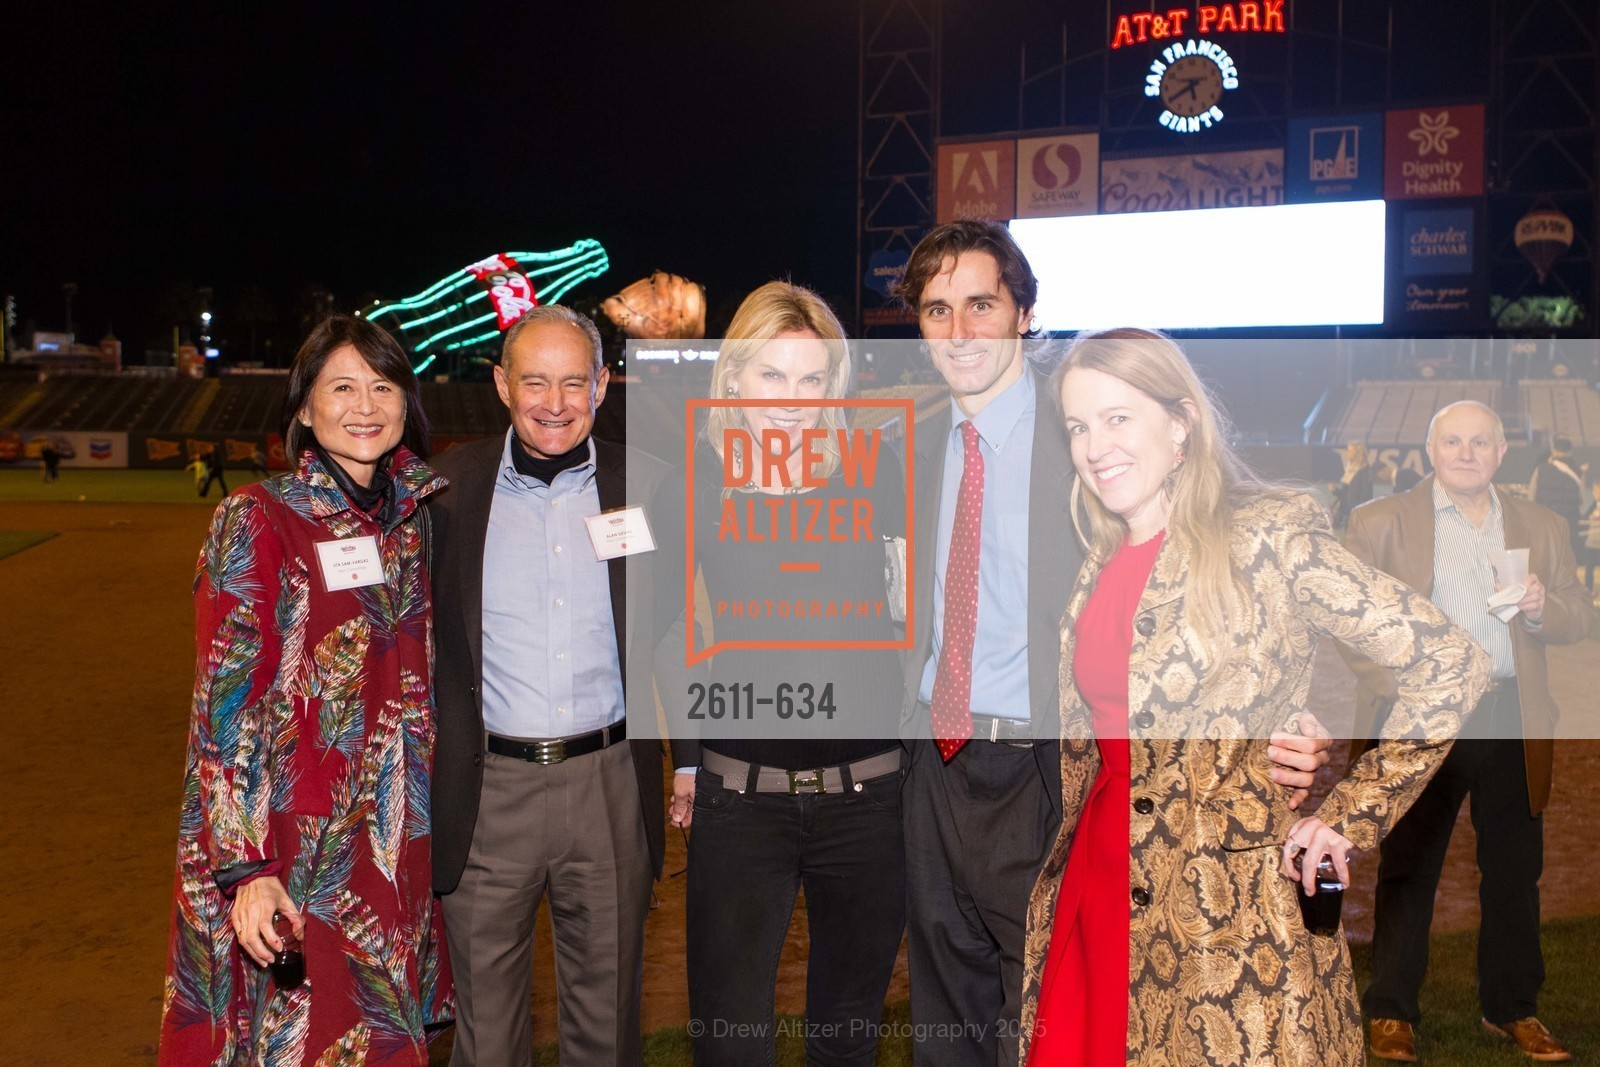 Lita Sam-Vargas, Alan Gevins, Tracy Gibbs, Paul Pelosi, Nora Feeley, Holiday Heroes 2015, AT&T Park, December 7th, 2015,Drew Altizer, Drew Altizer Photography, full-service event agency, private events, San Francisco photographer, photographer California